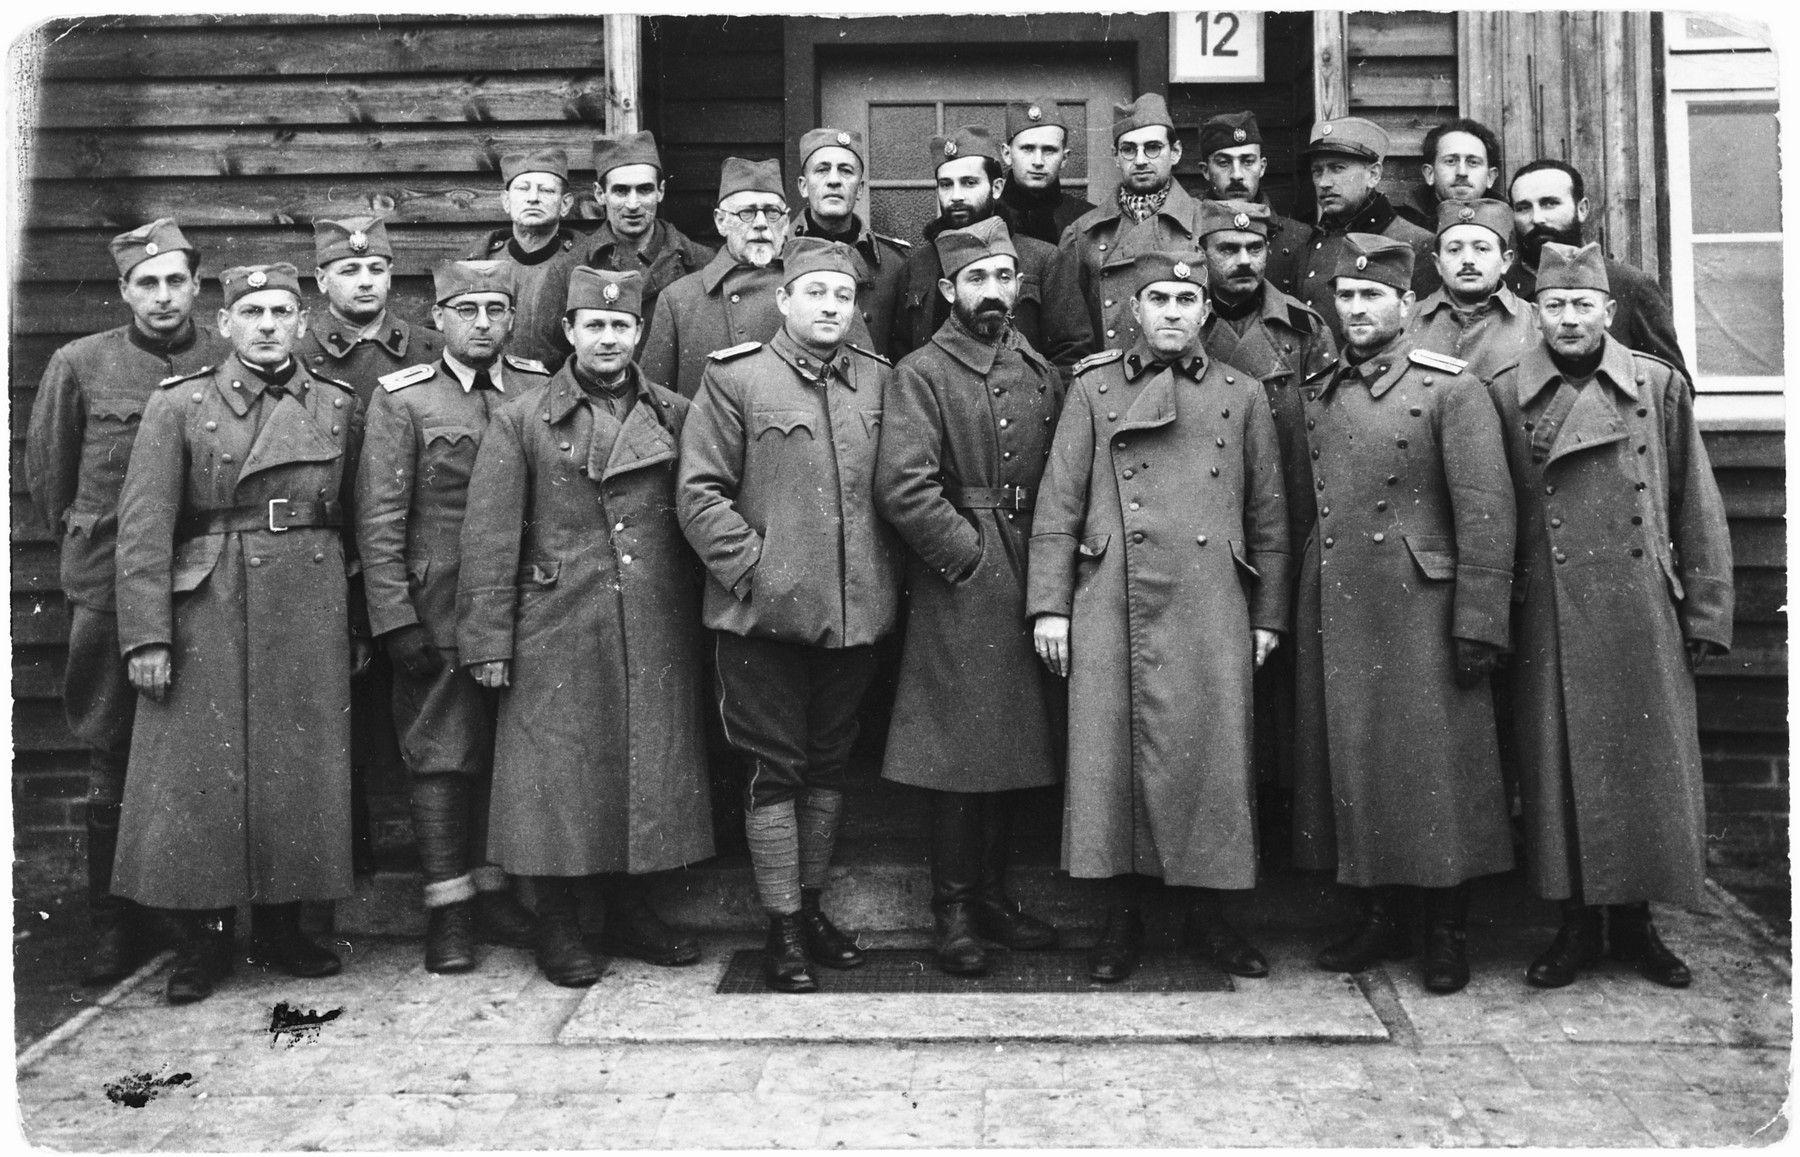 Group portrait of Yugoslavian soldiers in a POW camp in Osnabrueck, Germany.  Among those pictured is Marko Spitzer (front row, fifth from right), Yugoslavian writer, Stanislav Vinaver (fourth from the left) and Ljubomir Popovic (front row, last on right).